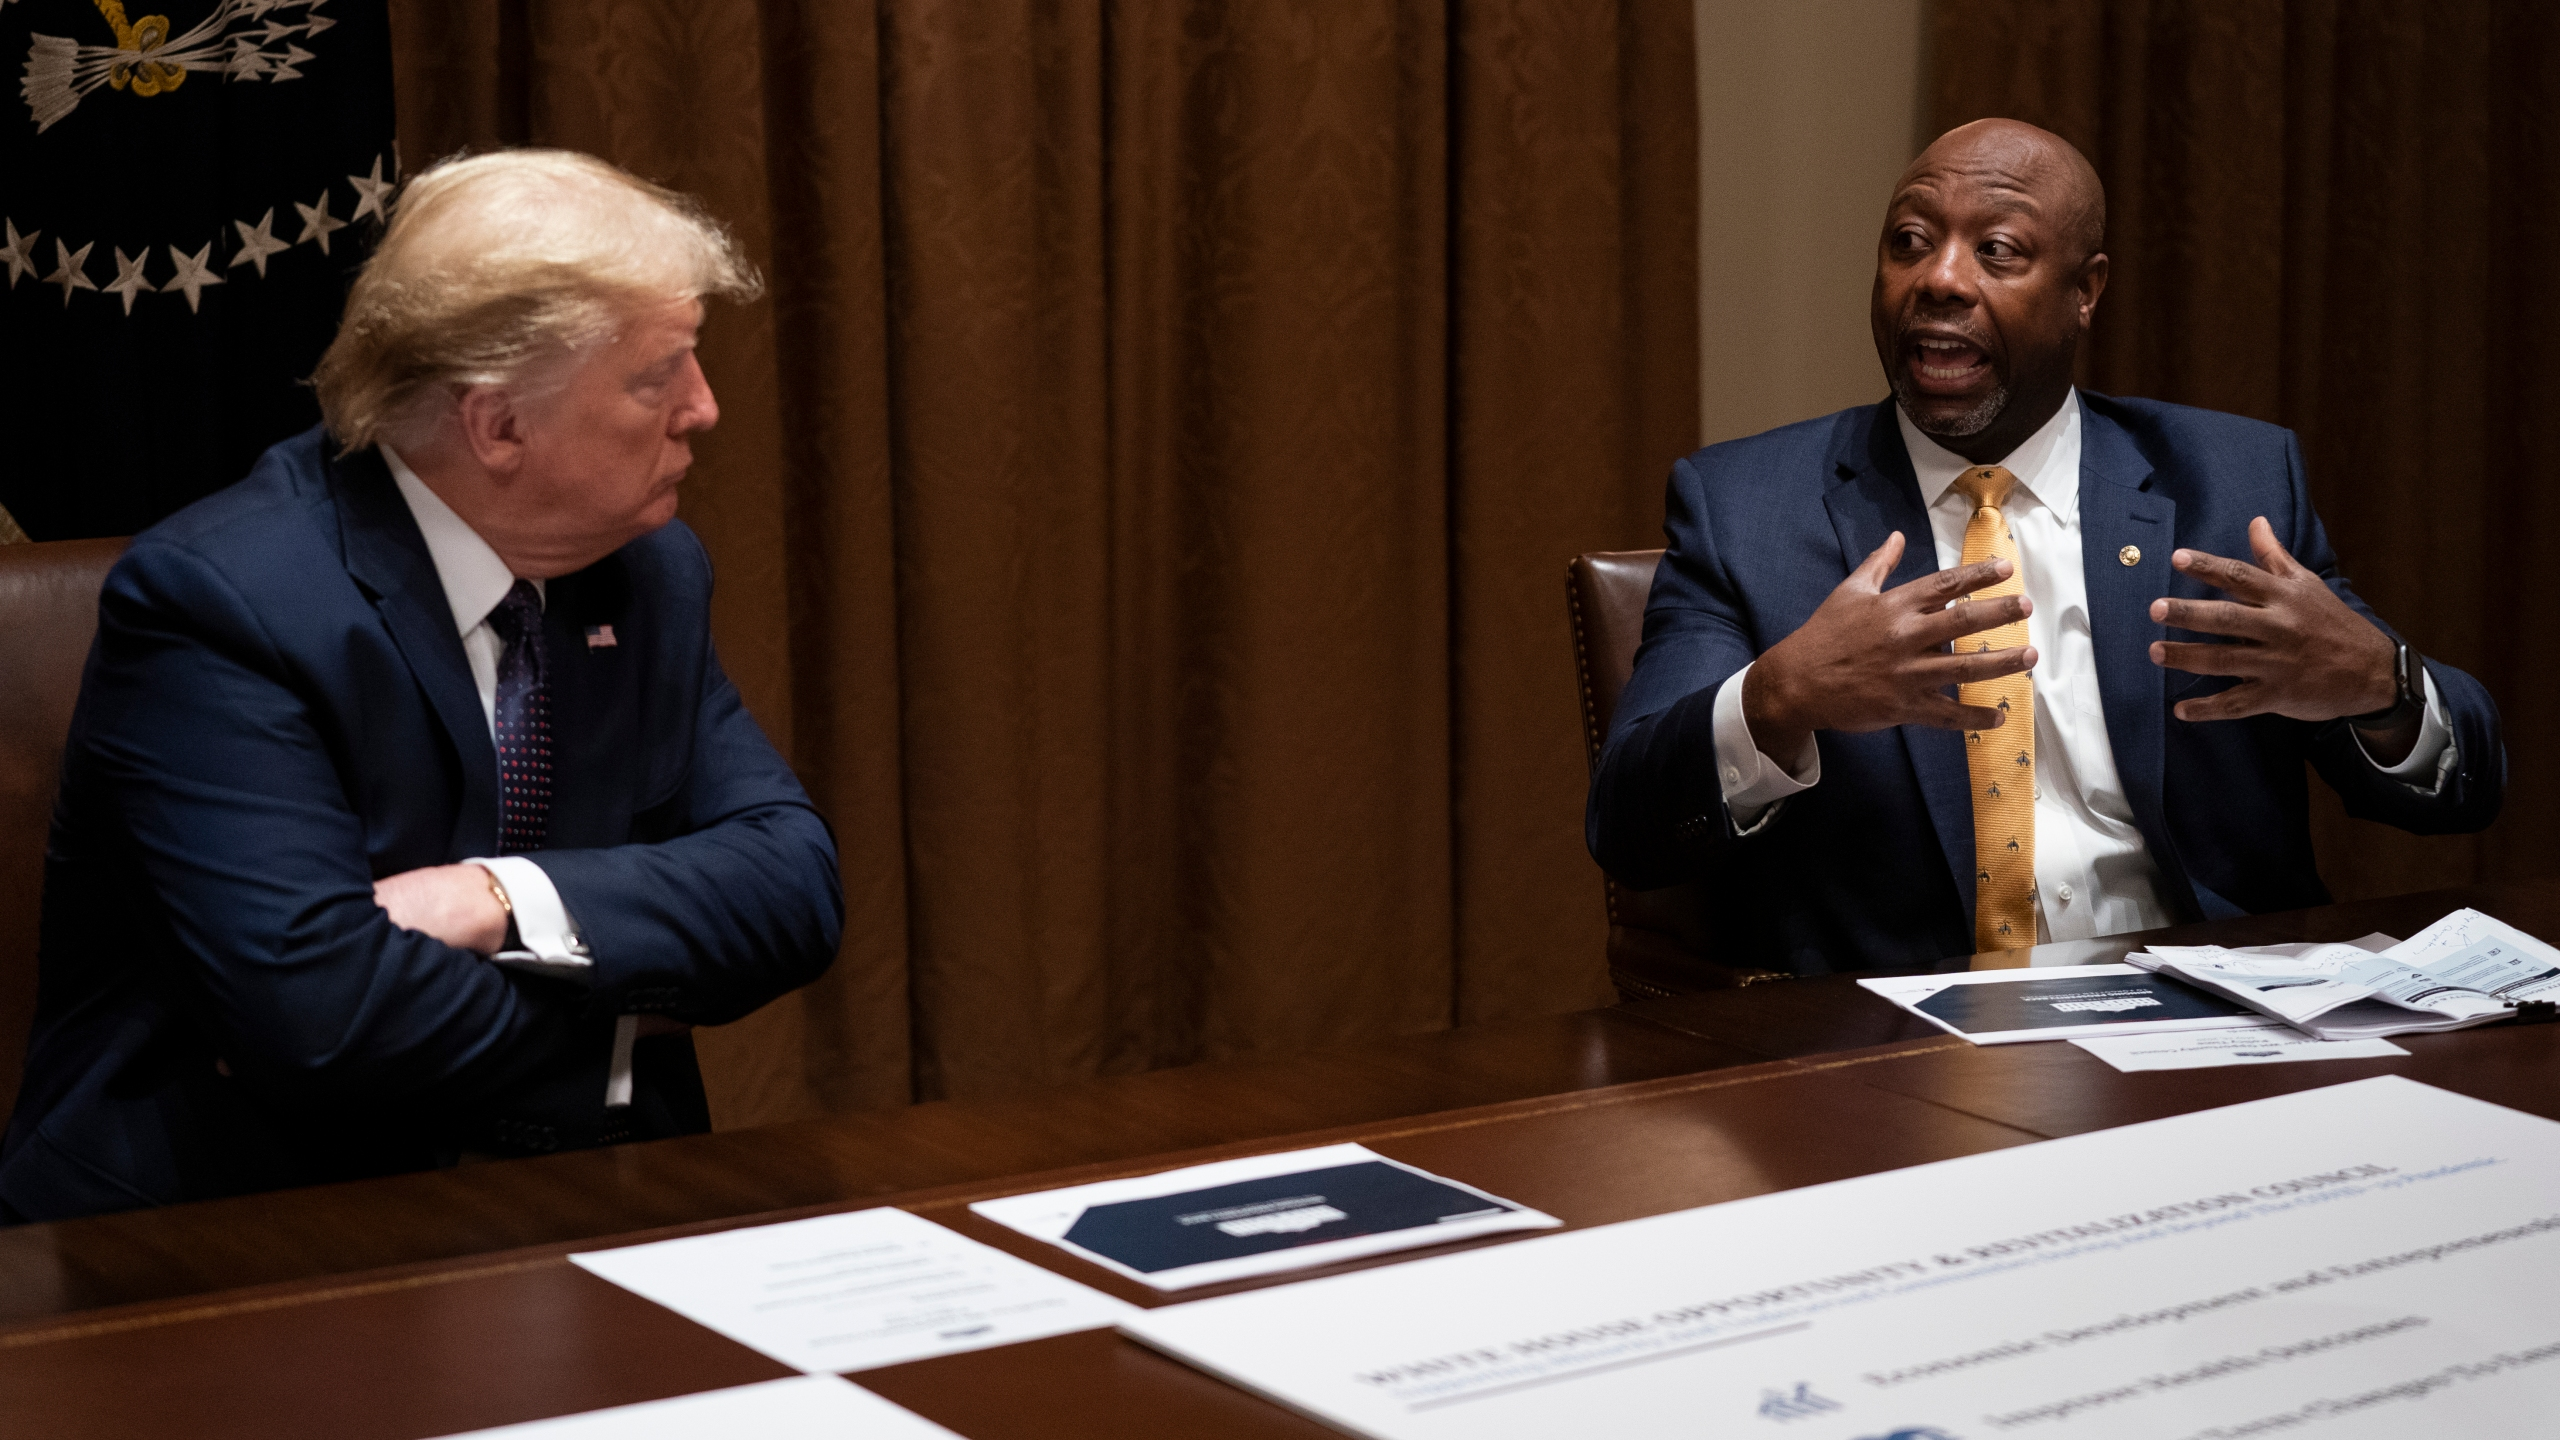 Donald Trump, Tim Scott